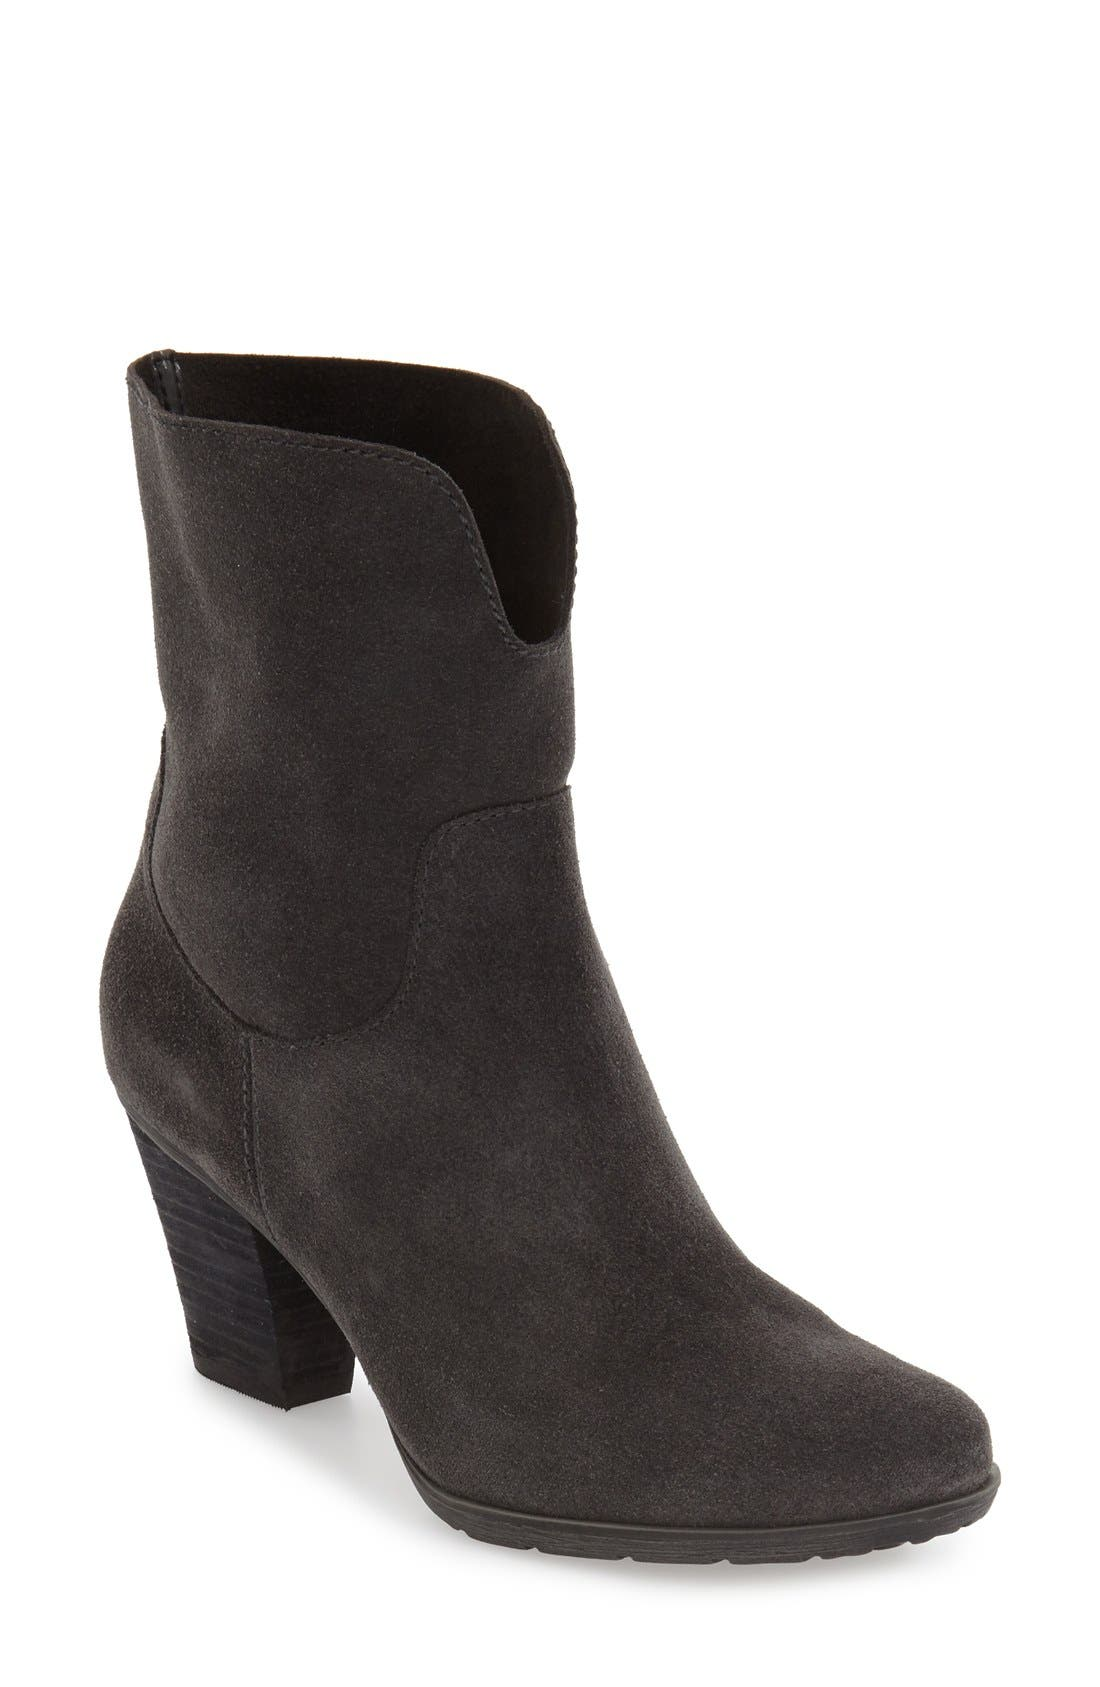 Fay Waterproof Ankle Boot,                         Main,                         color, 020